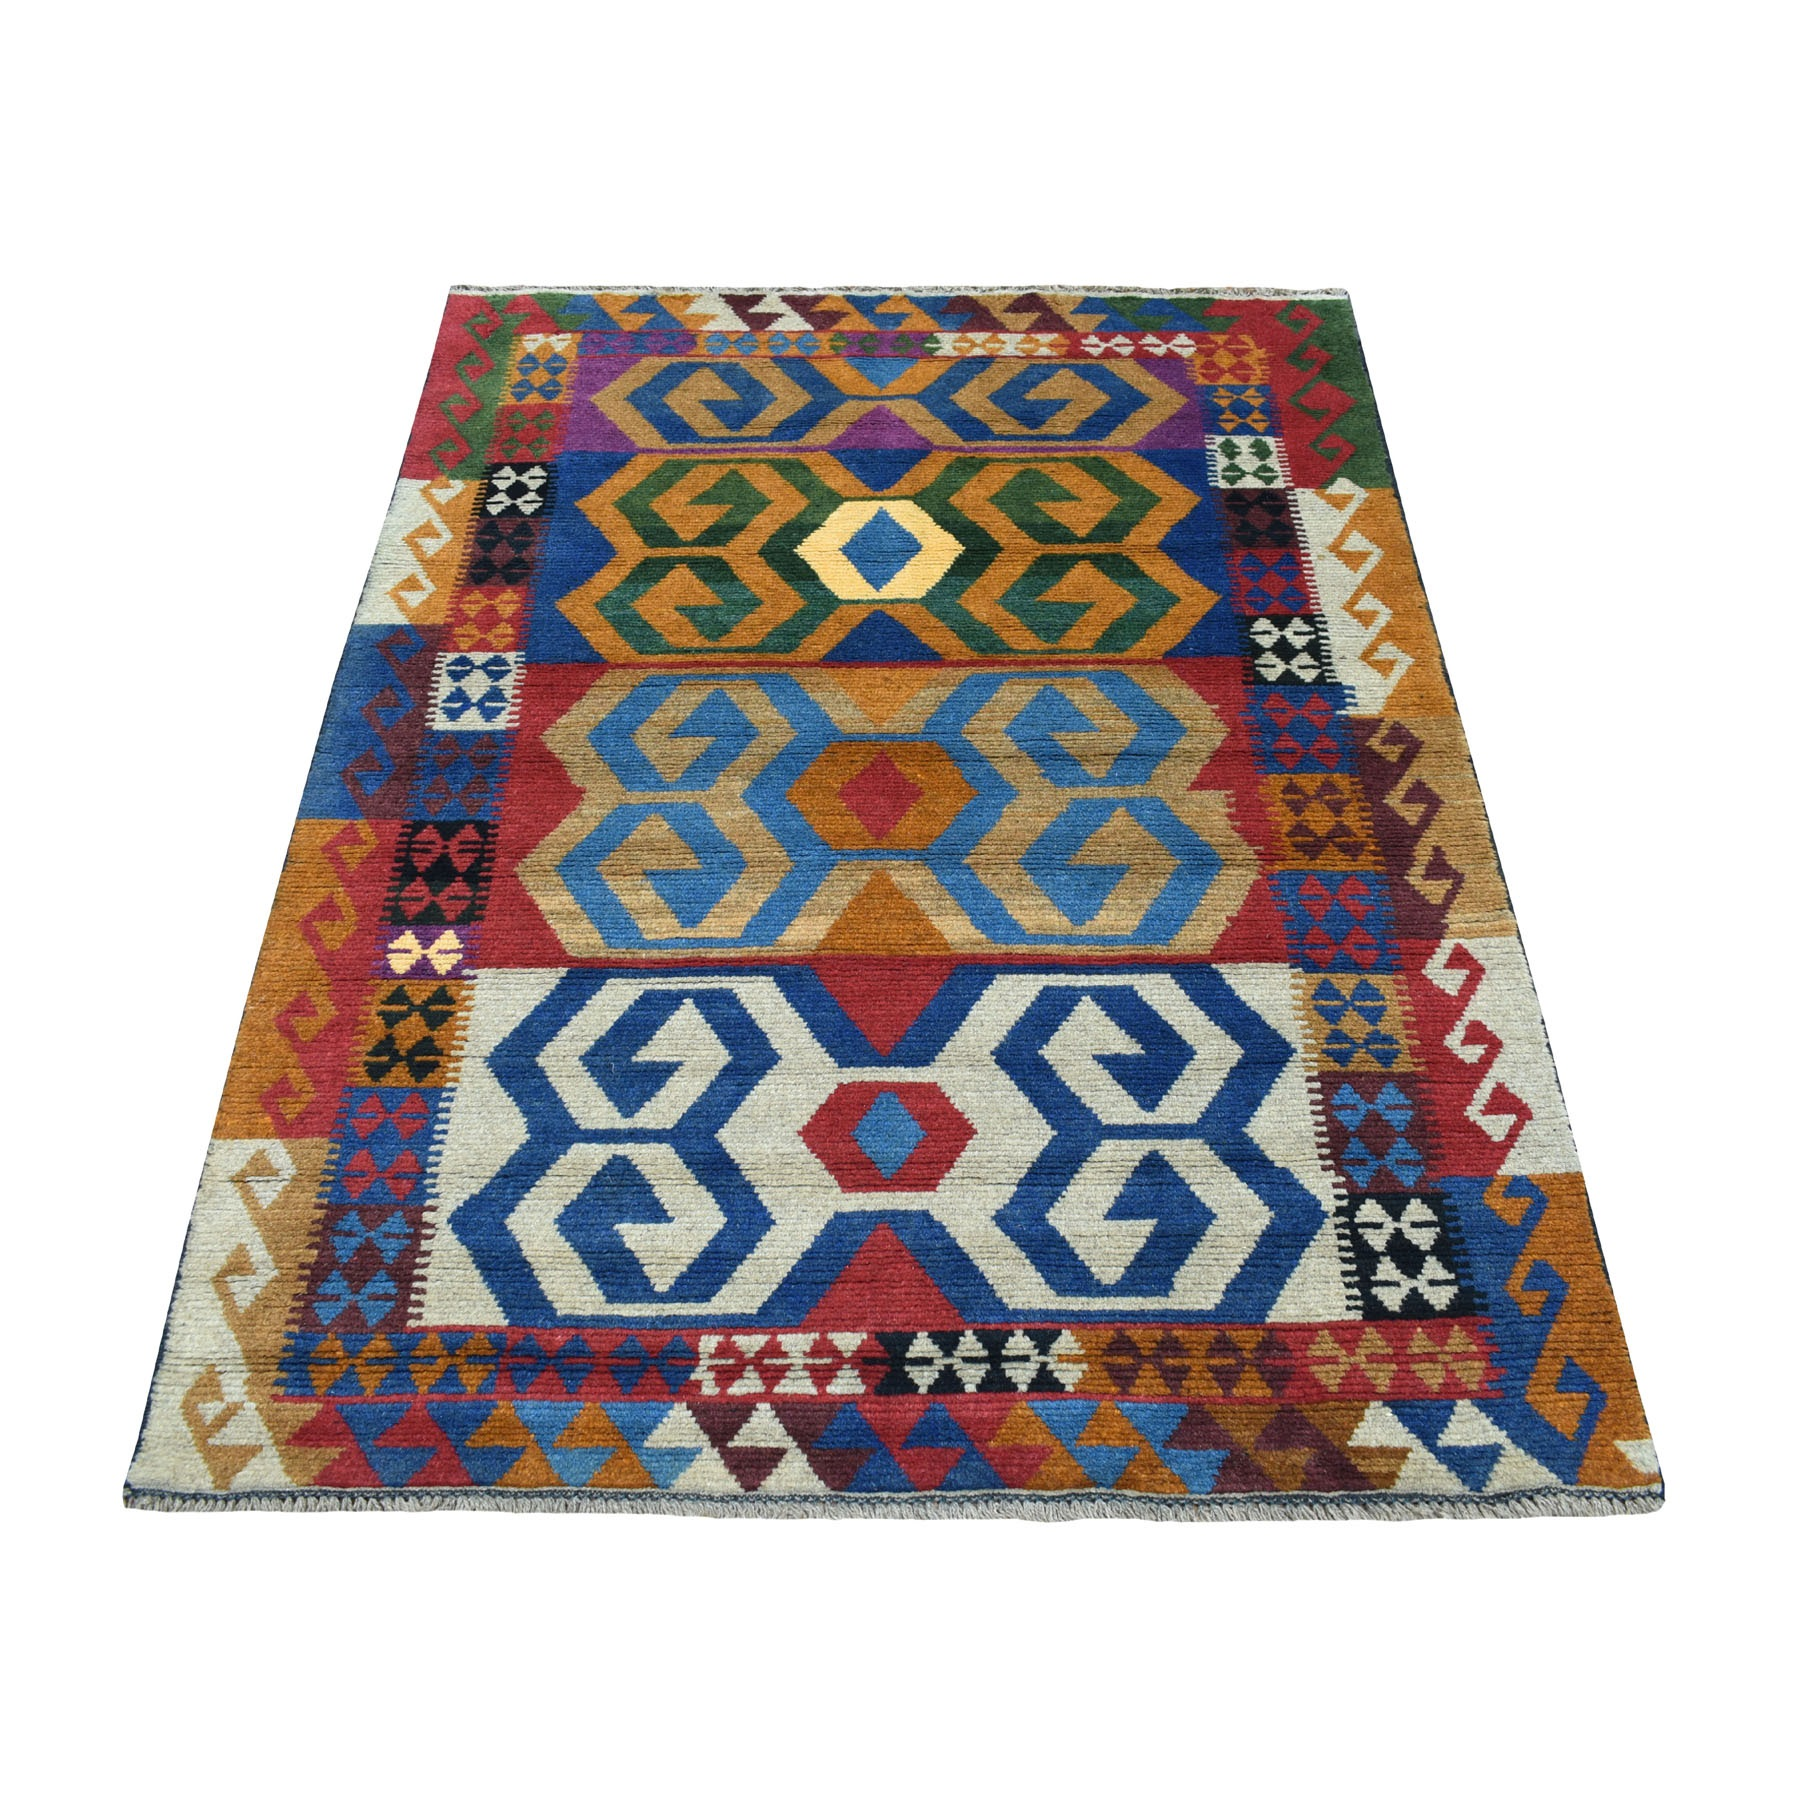 "3'10""x5'6"" Orange Colorful Afghan Baluch Geometric Design Hand Knotted Pure Wool Oriental Rug"